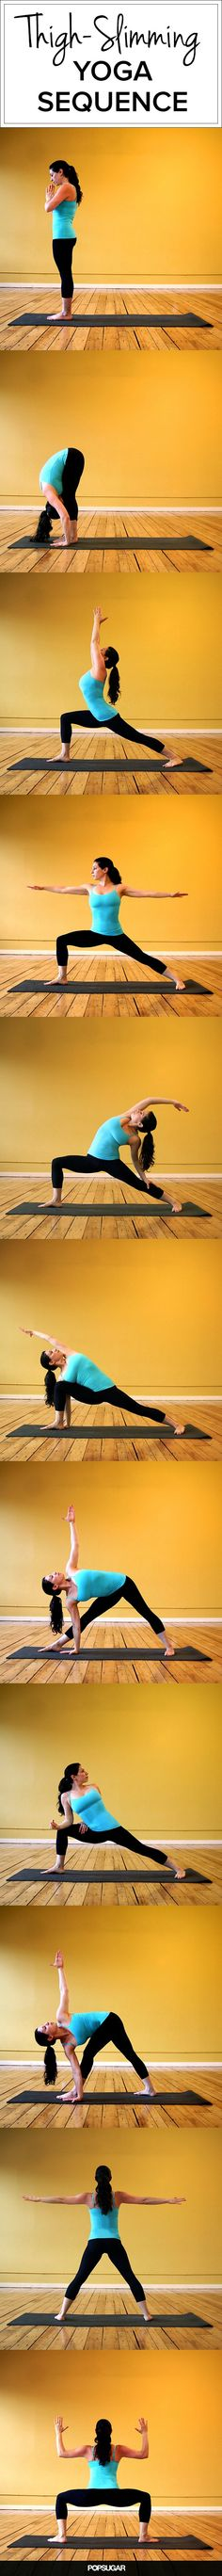 Pin for Later: Thigh-Slimming Yoga Sequence to Show Off Those Summer Skirts